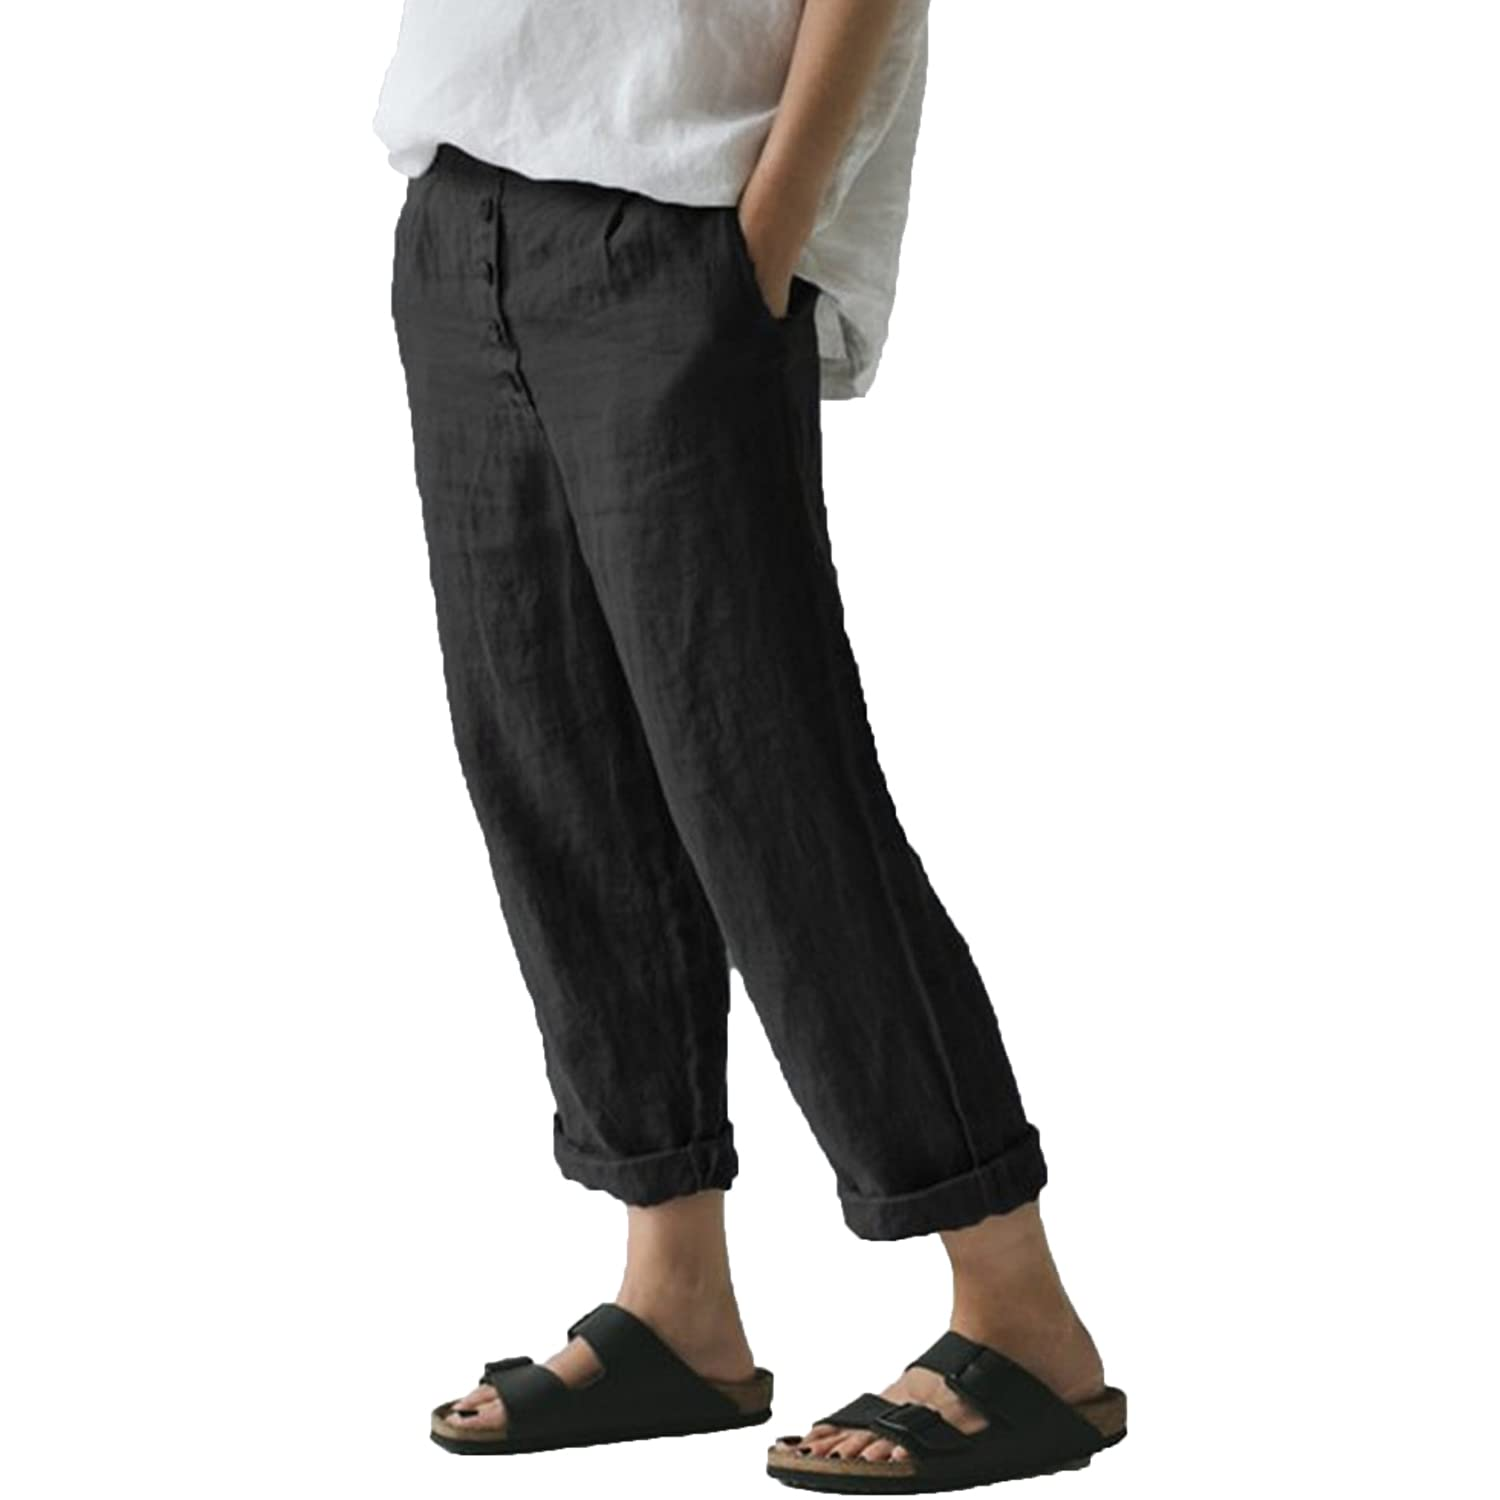 Women's Casual Linen Straight Leg Pants Flax Relaxed-Fit Elastic High Waist Casualpants Lady Beach Pockets Trousers (Small,Black)